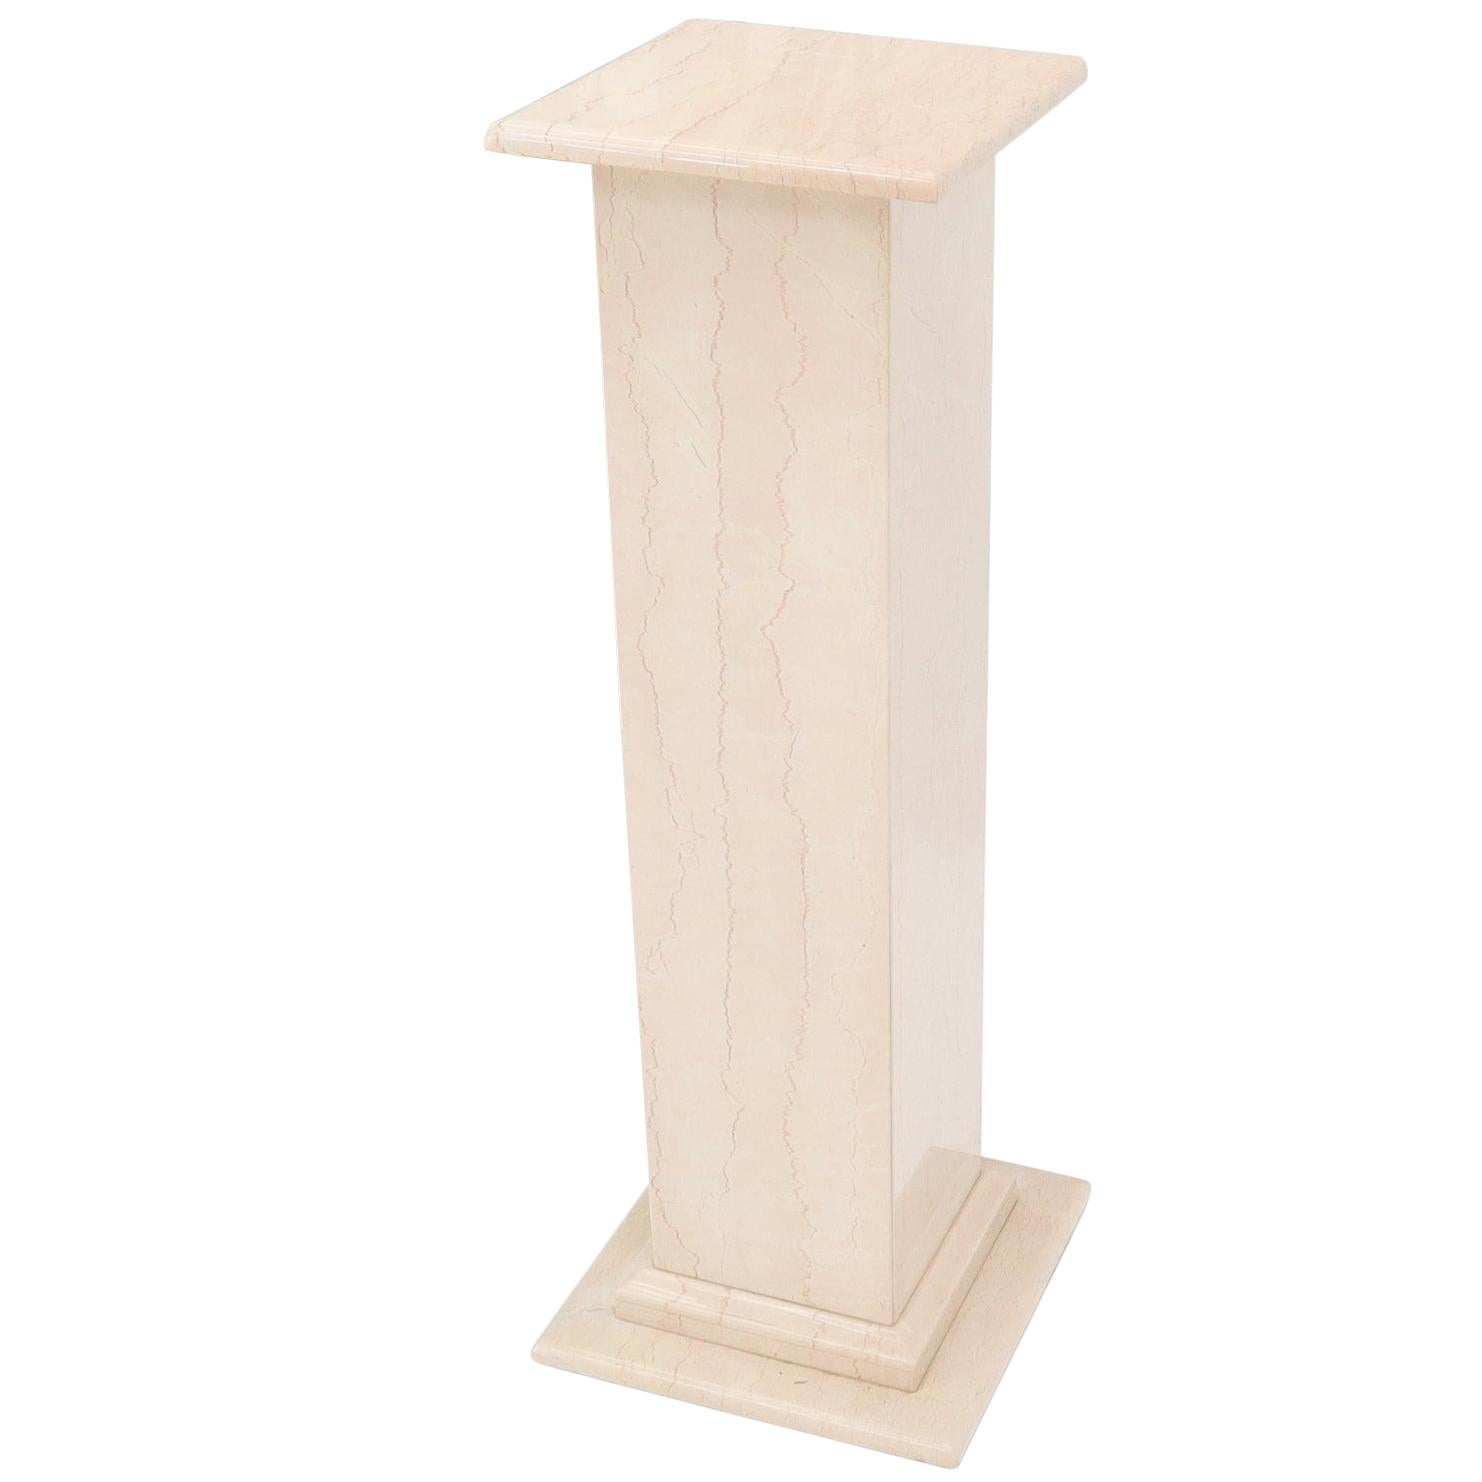 Pale Pink to White Marble Square Pedestal Stand